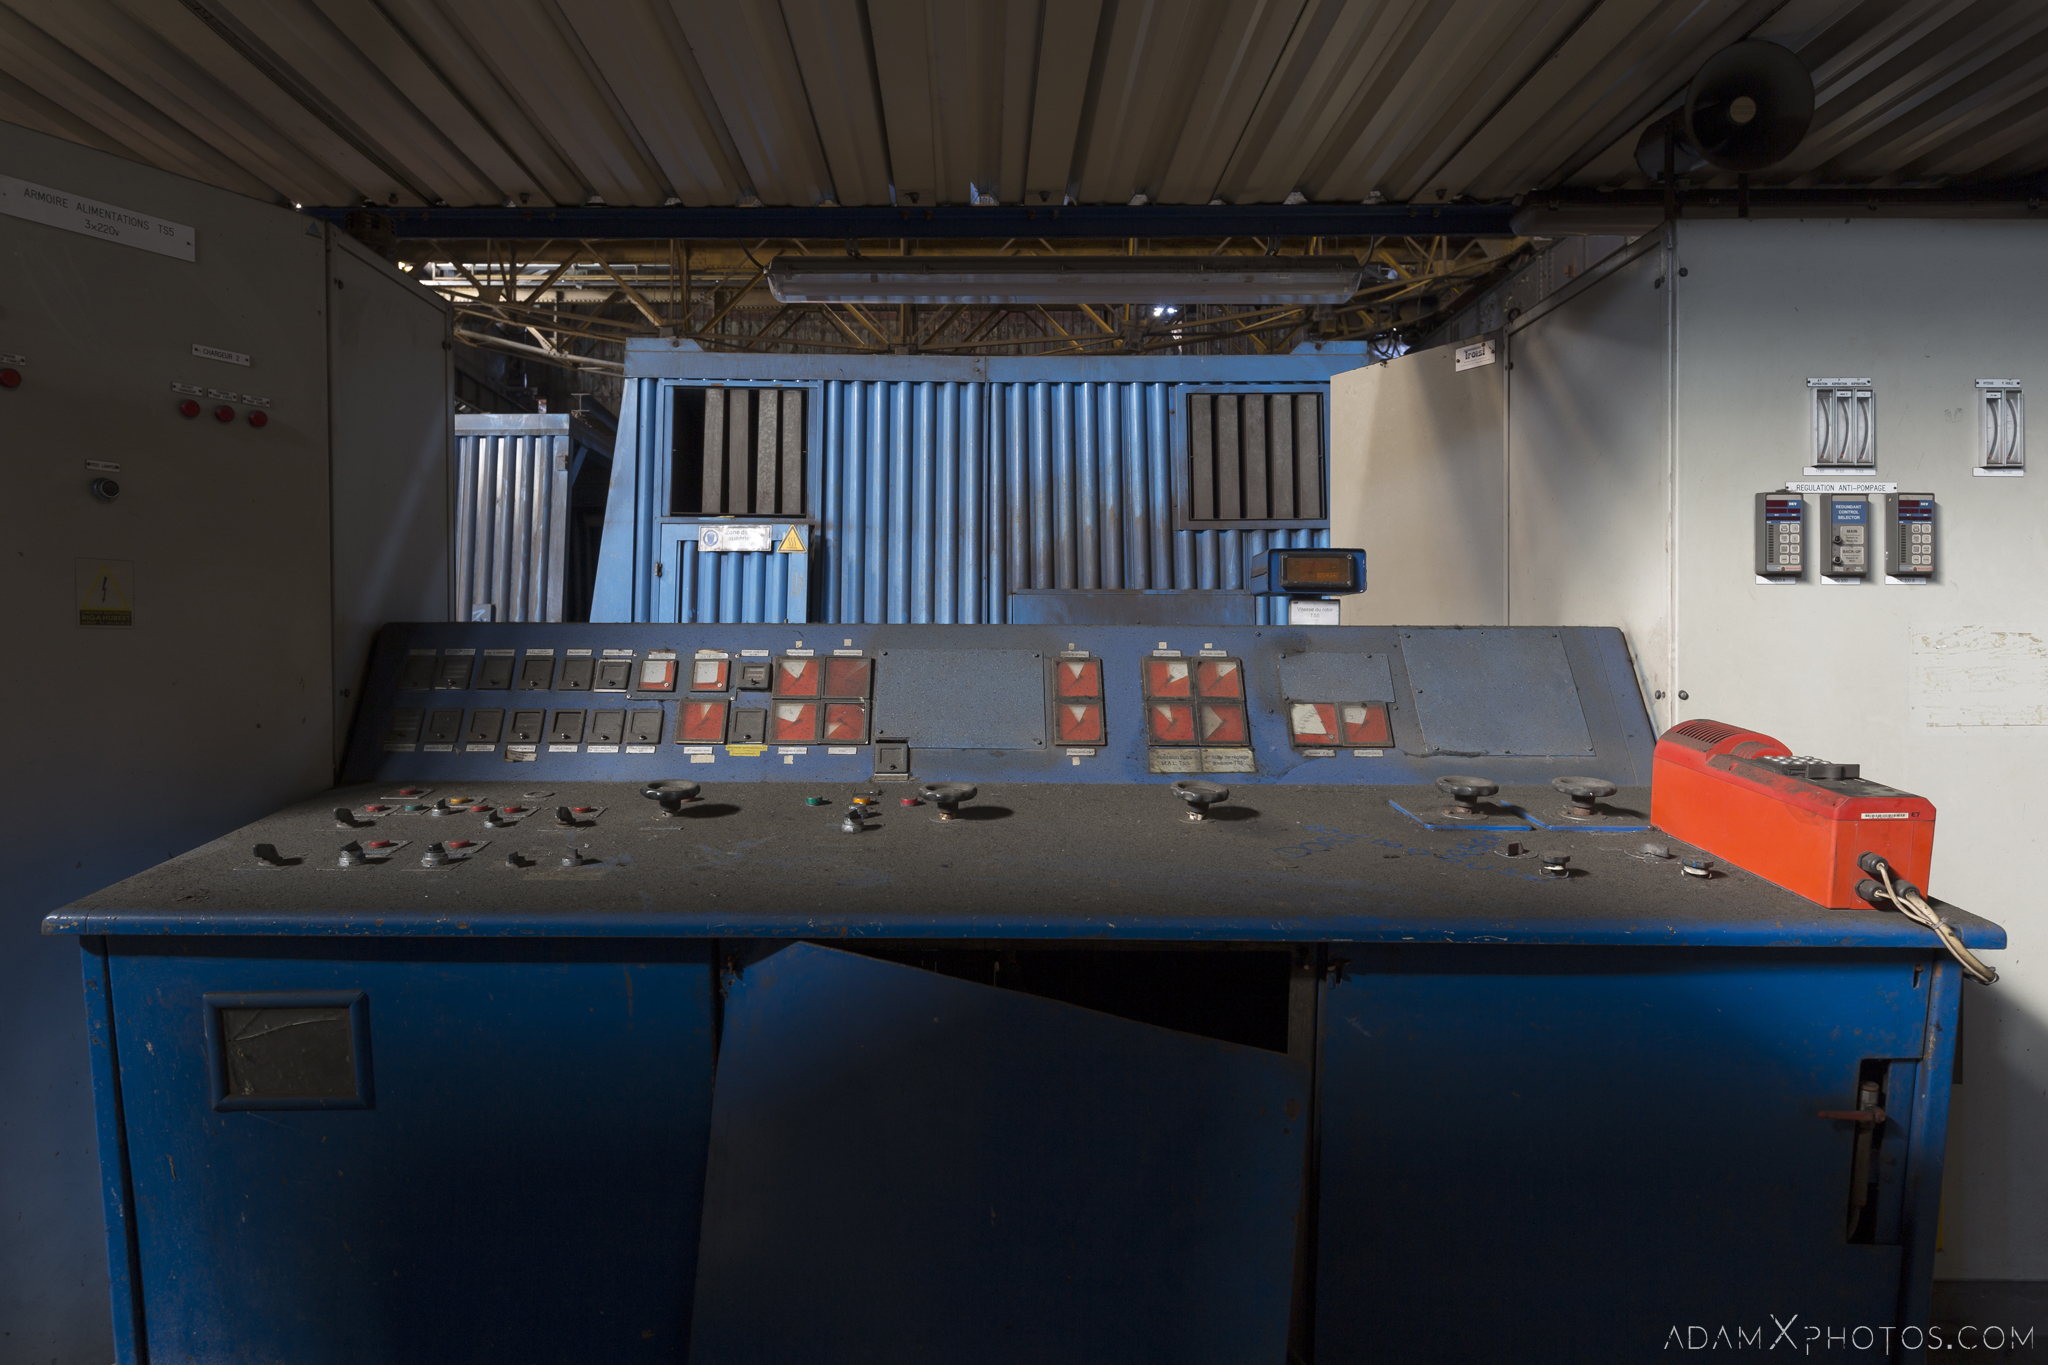 Blue control desk Haut Fourneau B HFB Blast Furnace Steelworks Adam X Urban Exploration Belgium Access 2017 Abandoned decay lost forgotten derelict location creepy haunting eerie